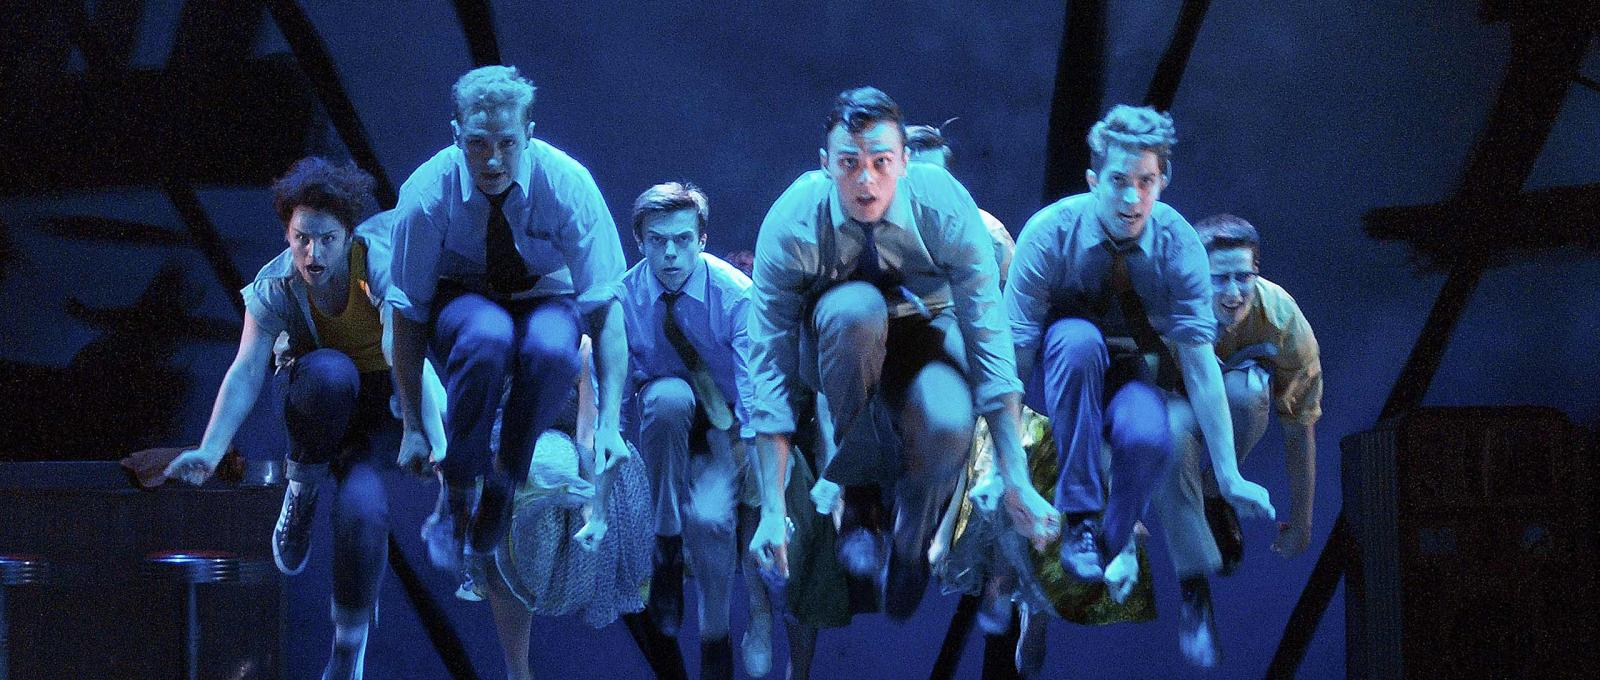 Keep Cool Boy - The Jets Aloft in West Side Story